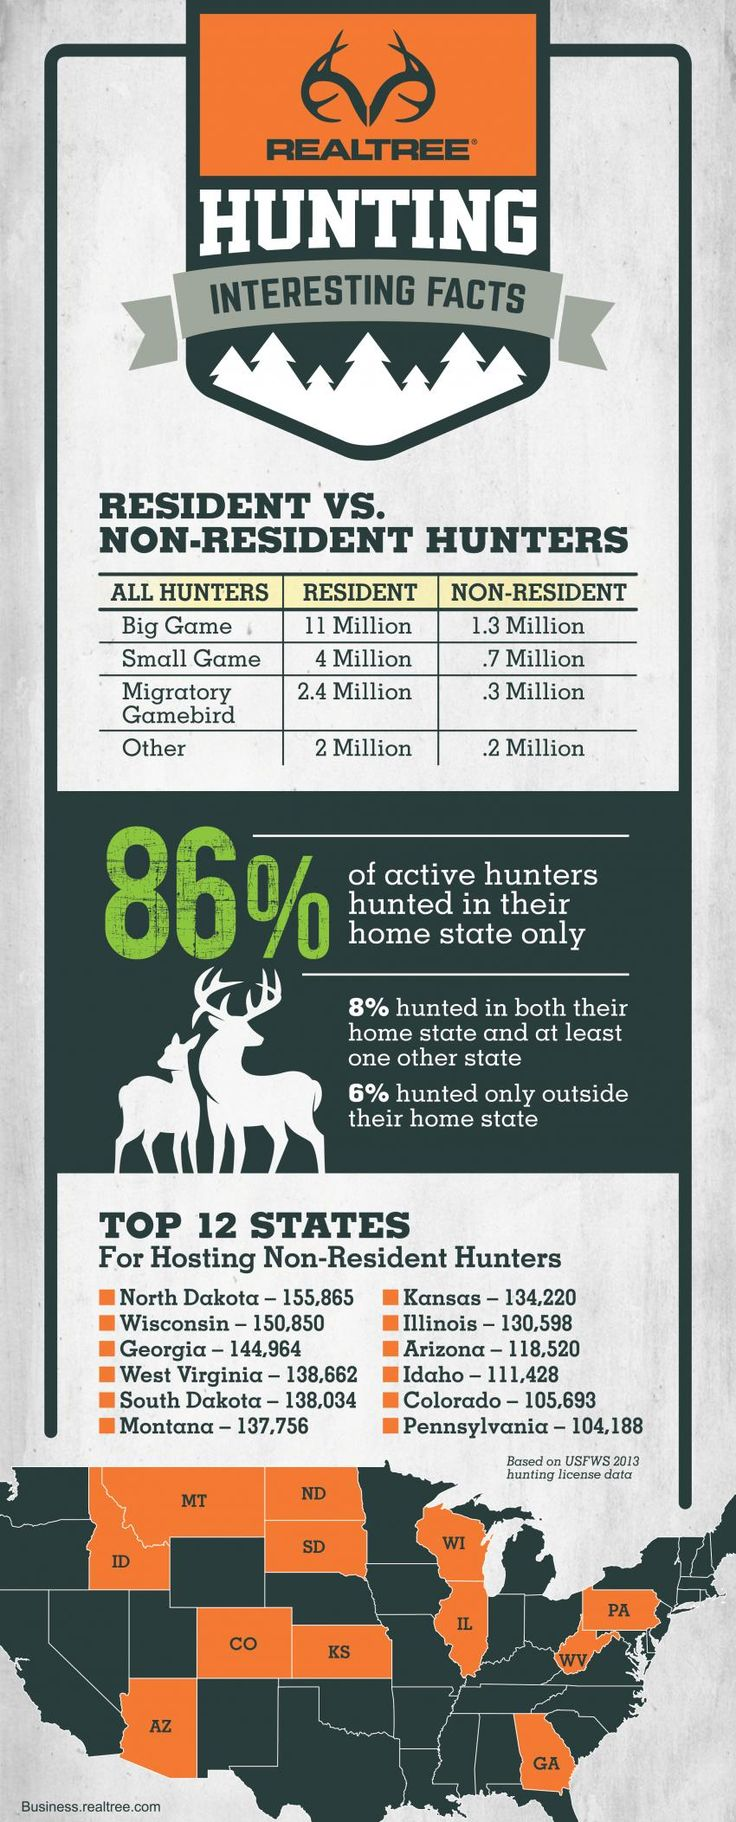 Over the past 30 years, the number of non-resident hunting licenses, tags, permits and stamps as a percentage of total purchases increased from 5.8% of total purchases in 1983 to 8.8% in 2013.This trend indicates a greater mobility of hunters across state lines. See more details >>